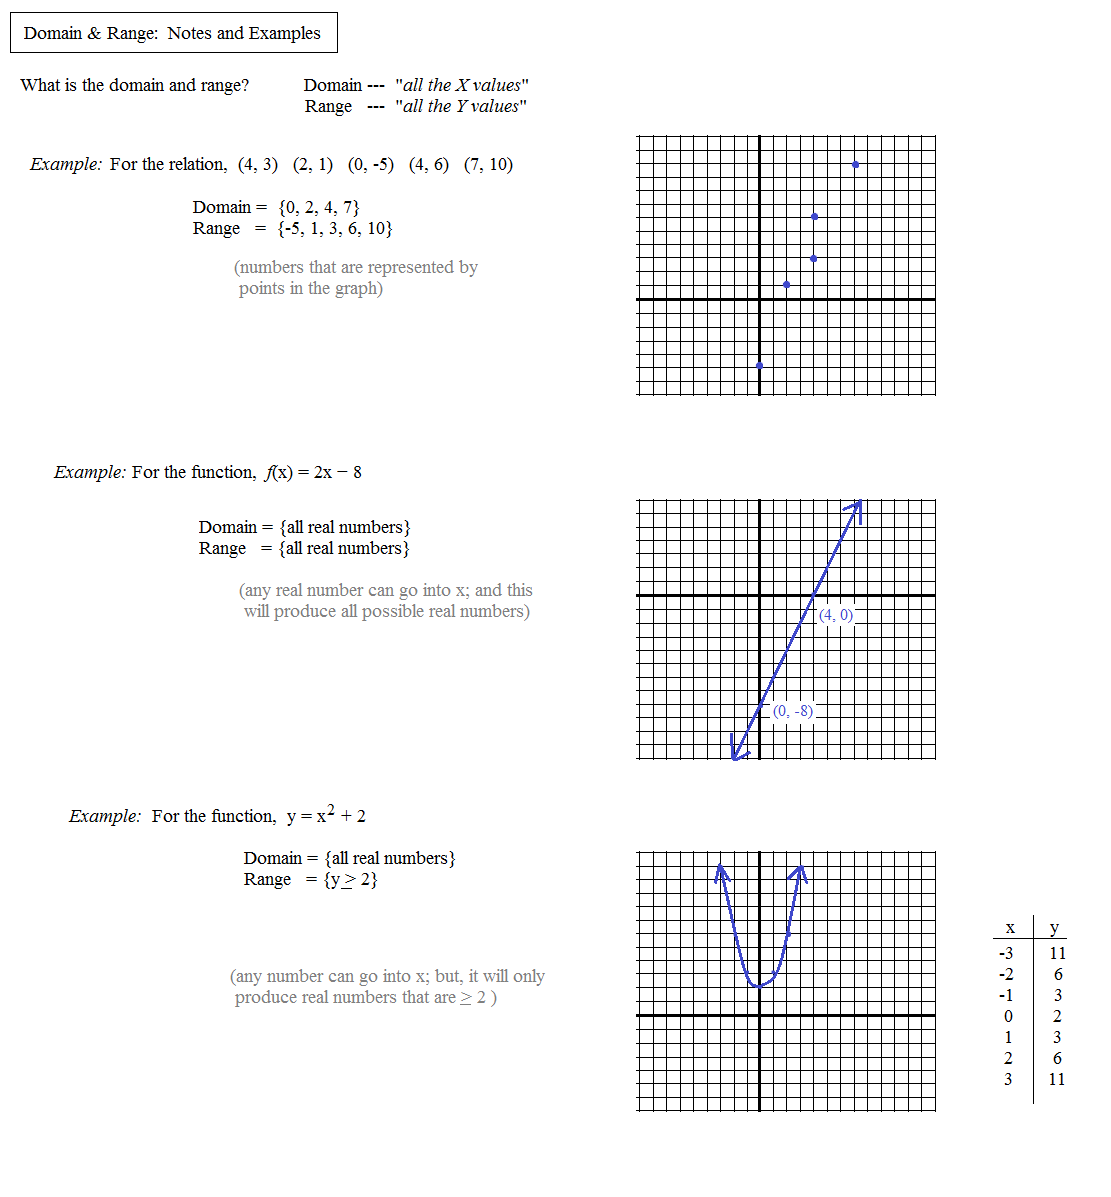 Mathworksheets4kids Com Domain And Range